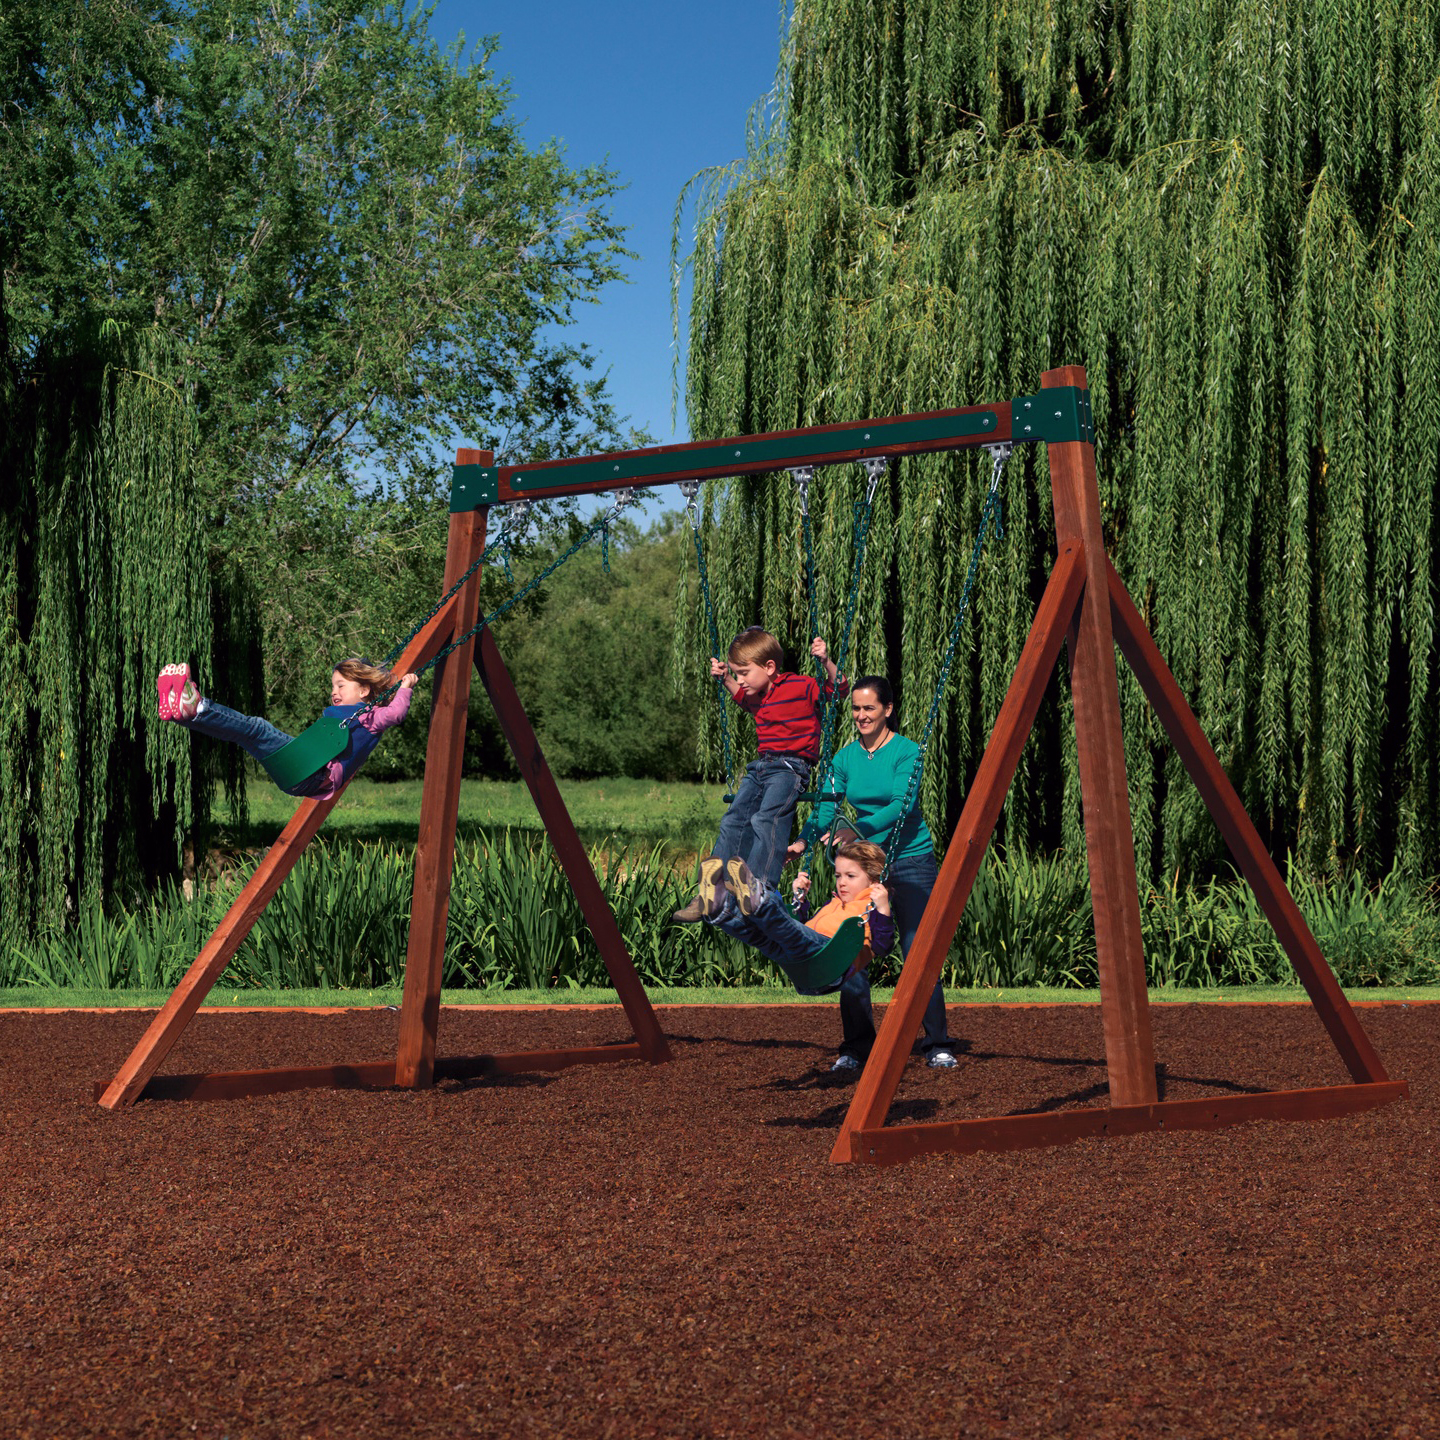 Free Standing Swing Set With 2 Belt Swings And A Trapeze Bar